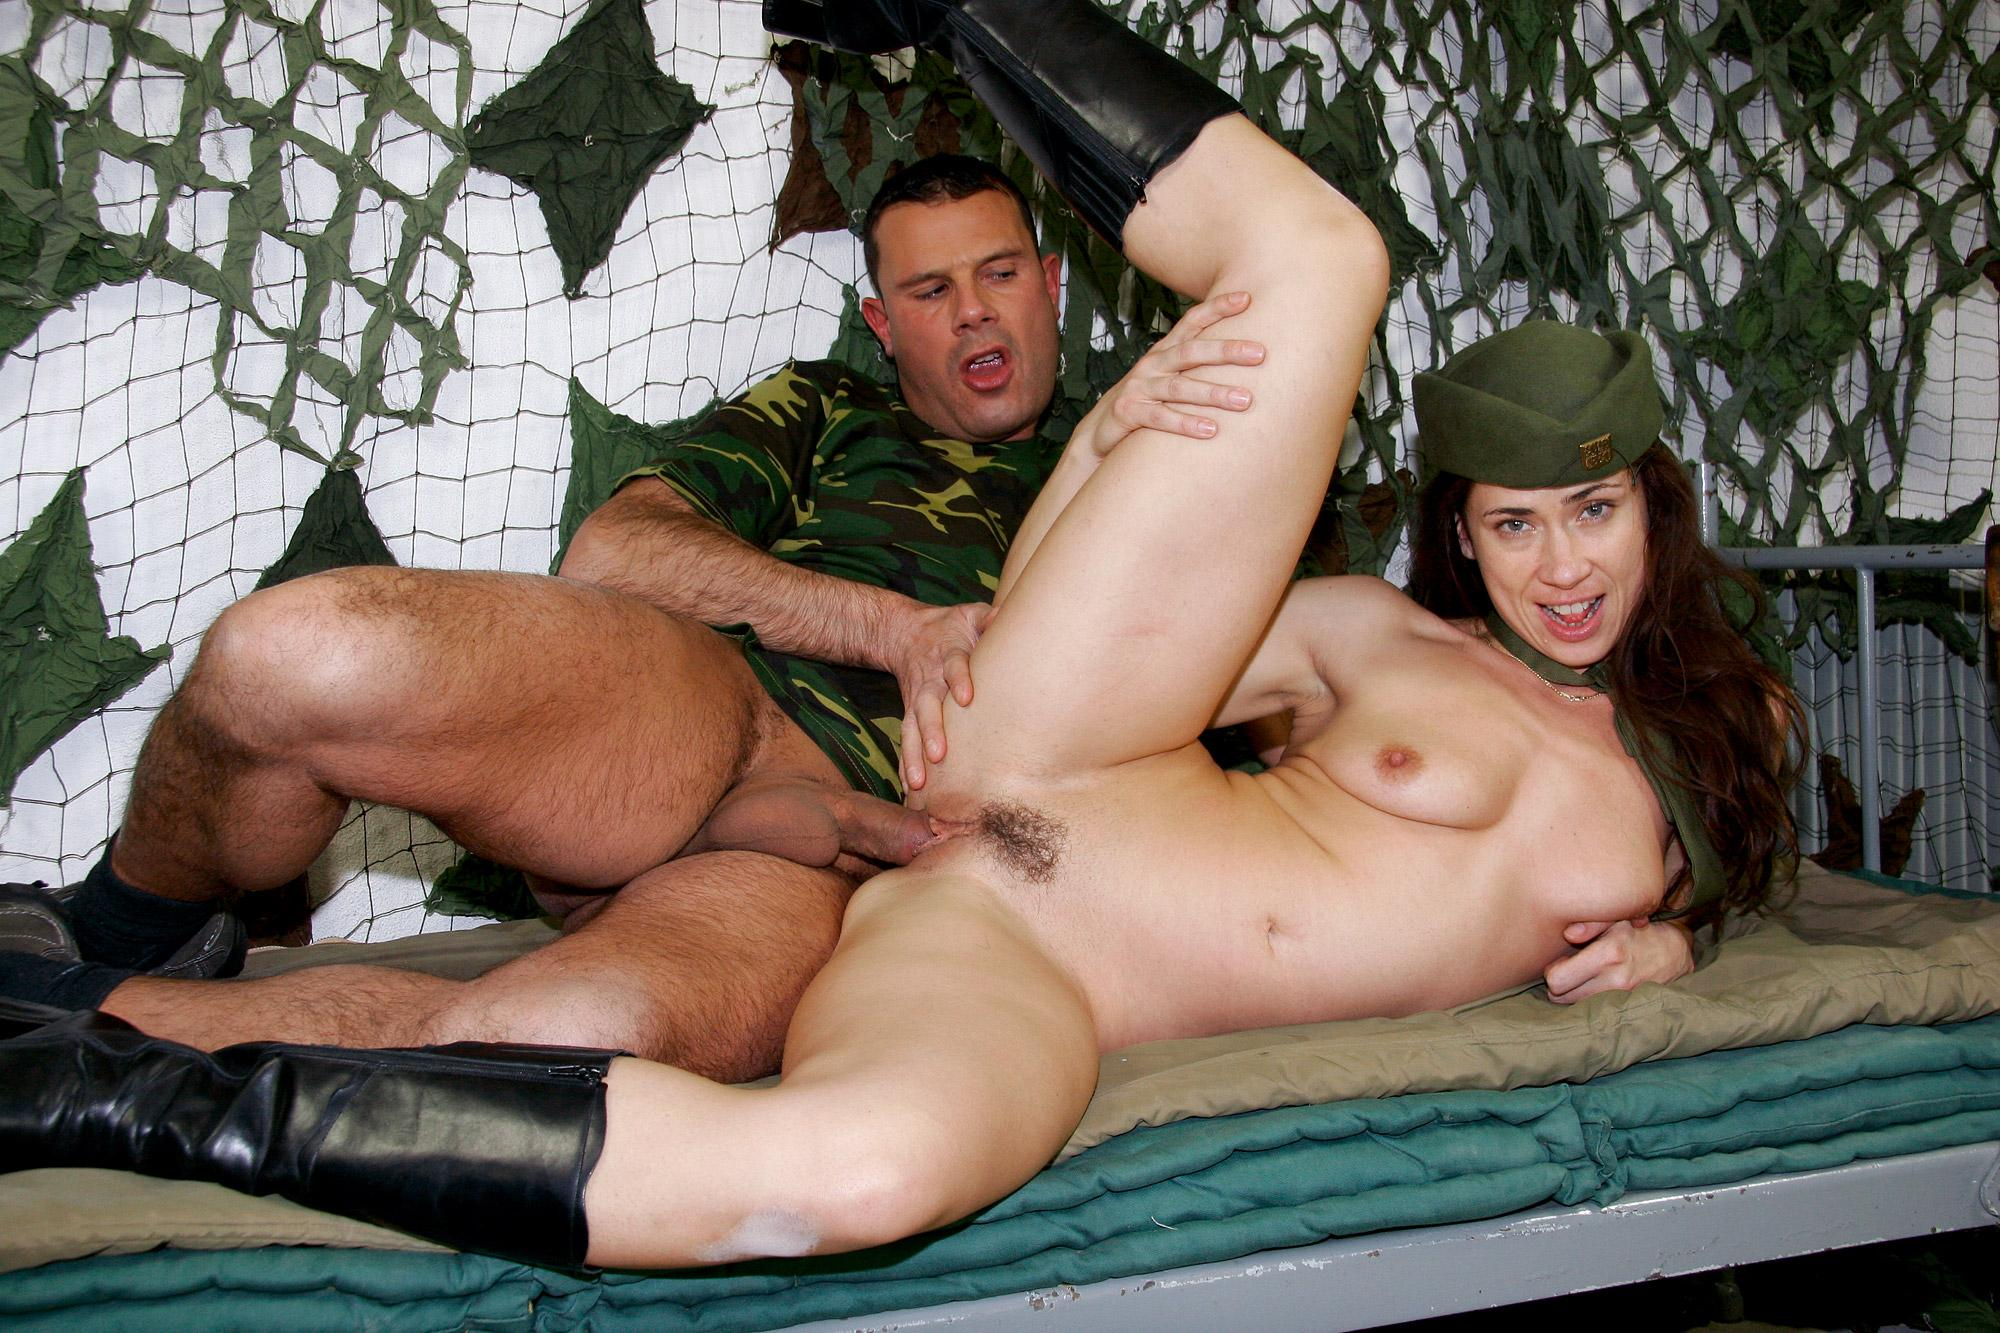 Wife fucks military man porn #4